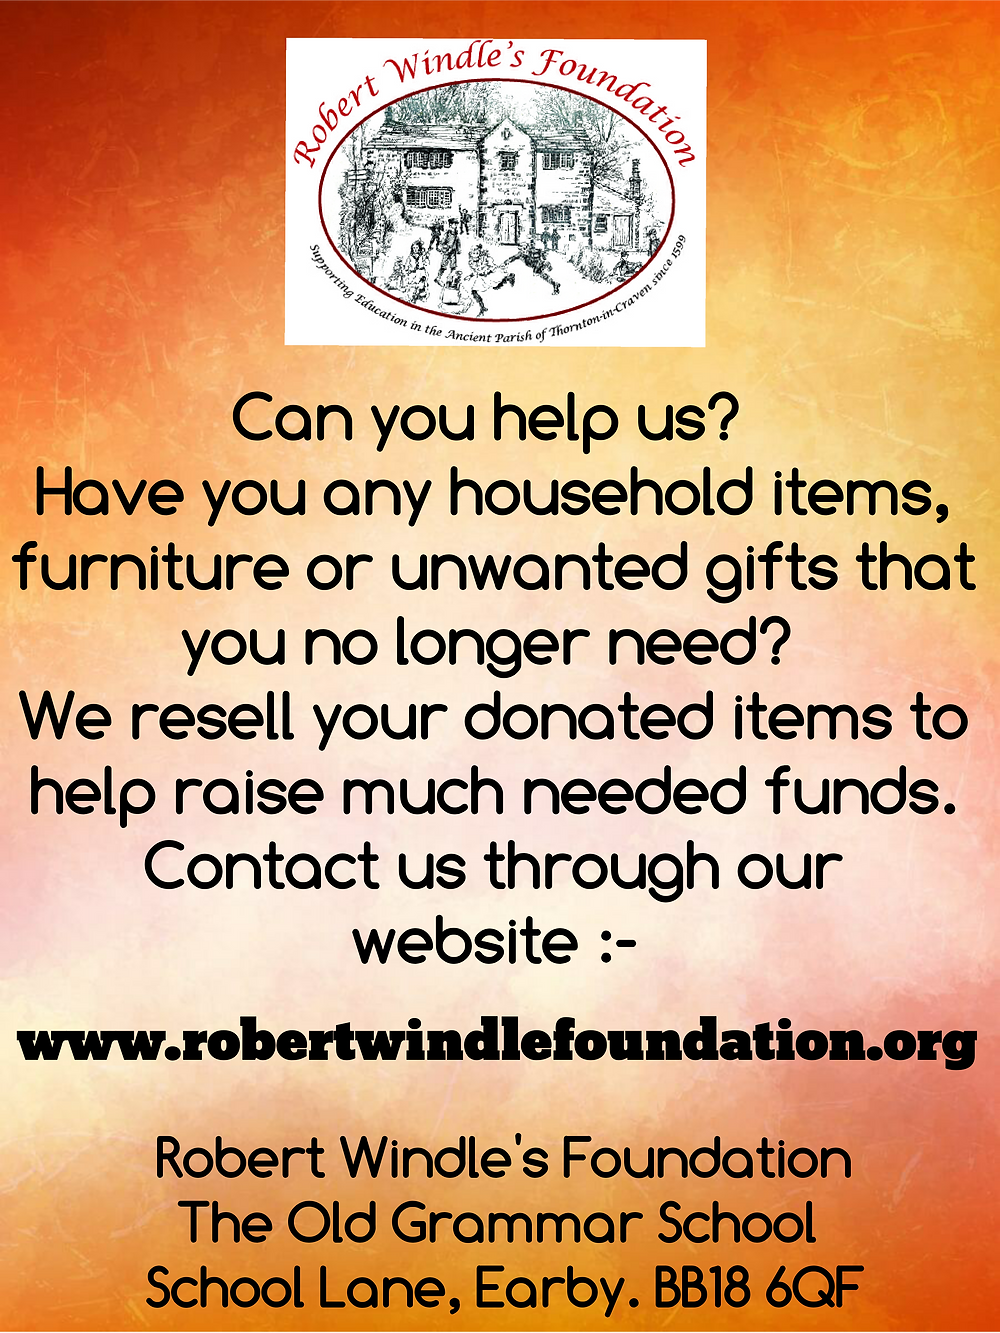 Robert Windle's poster asking for donations